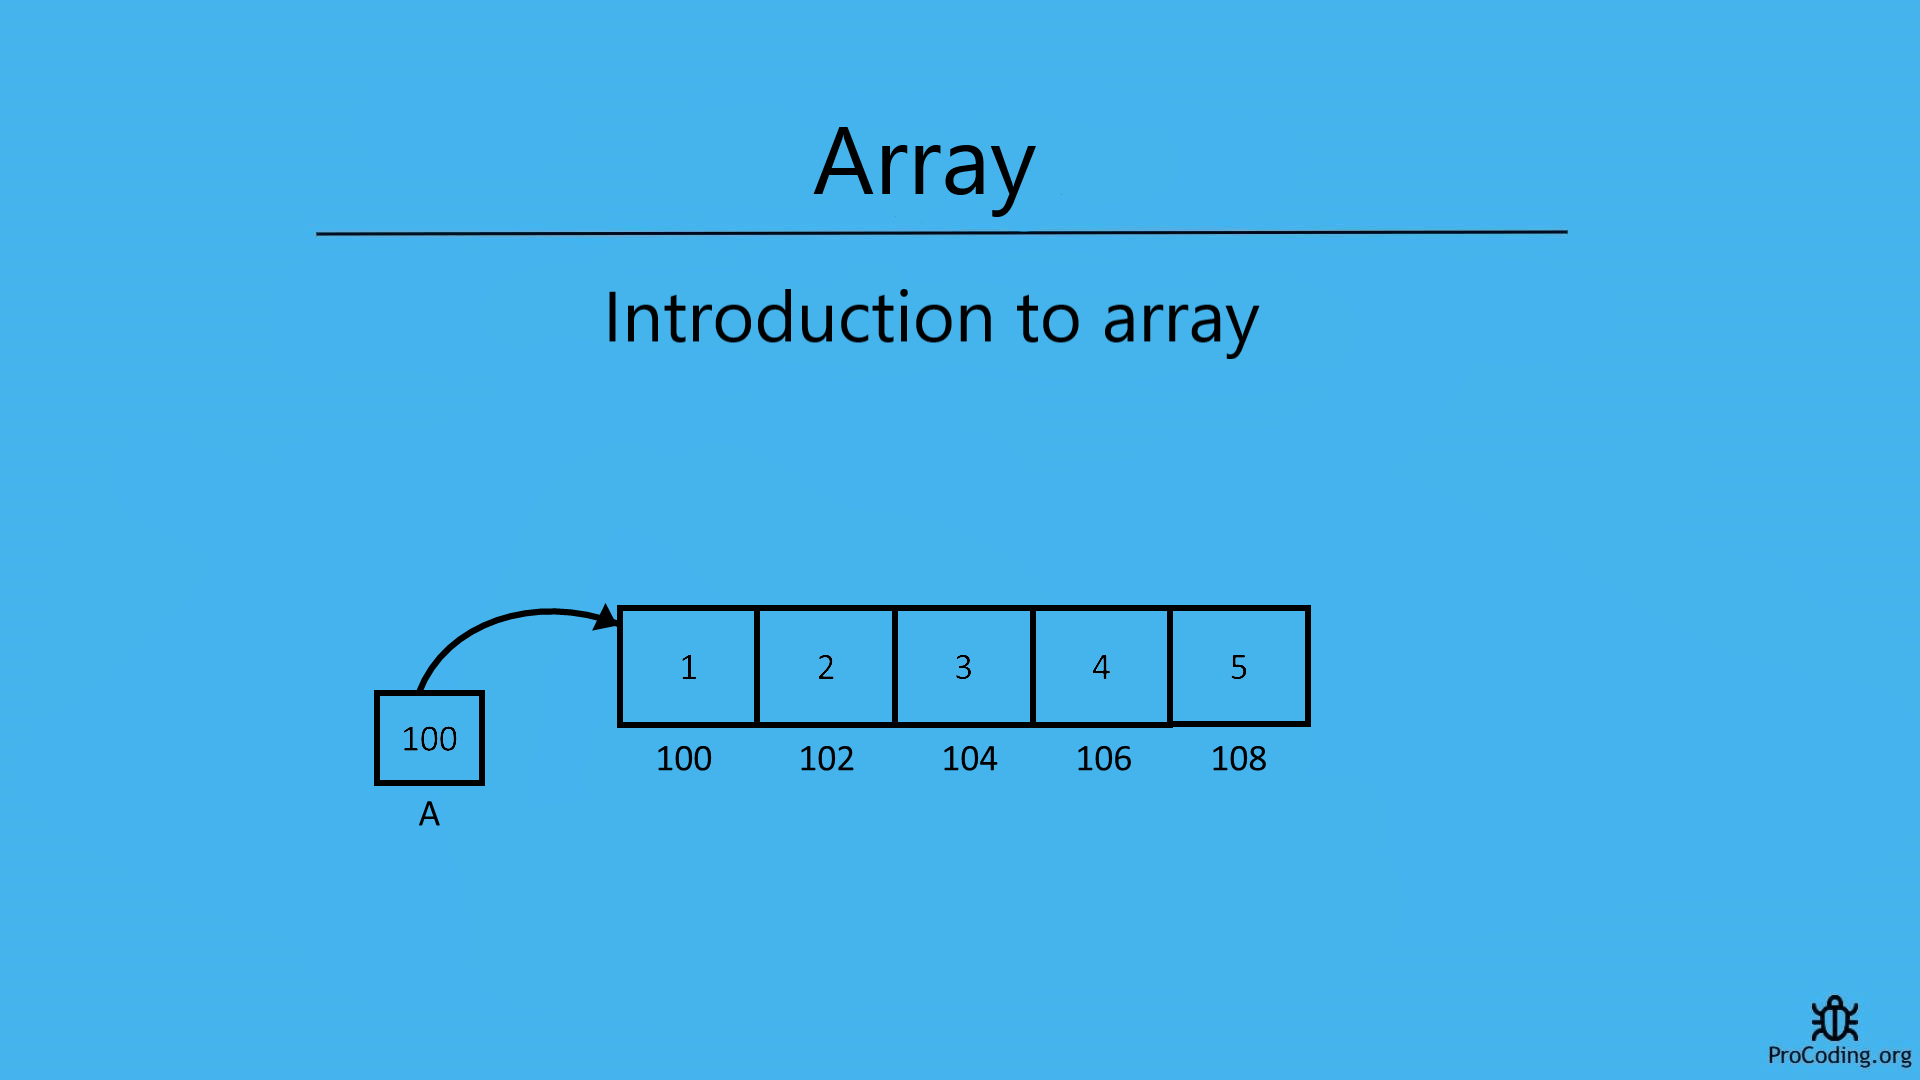 Introduction to array